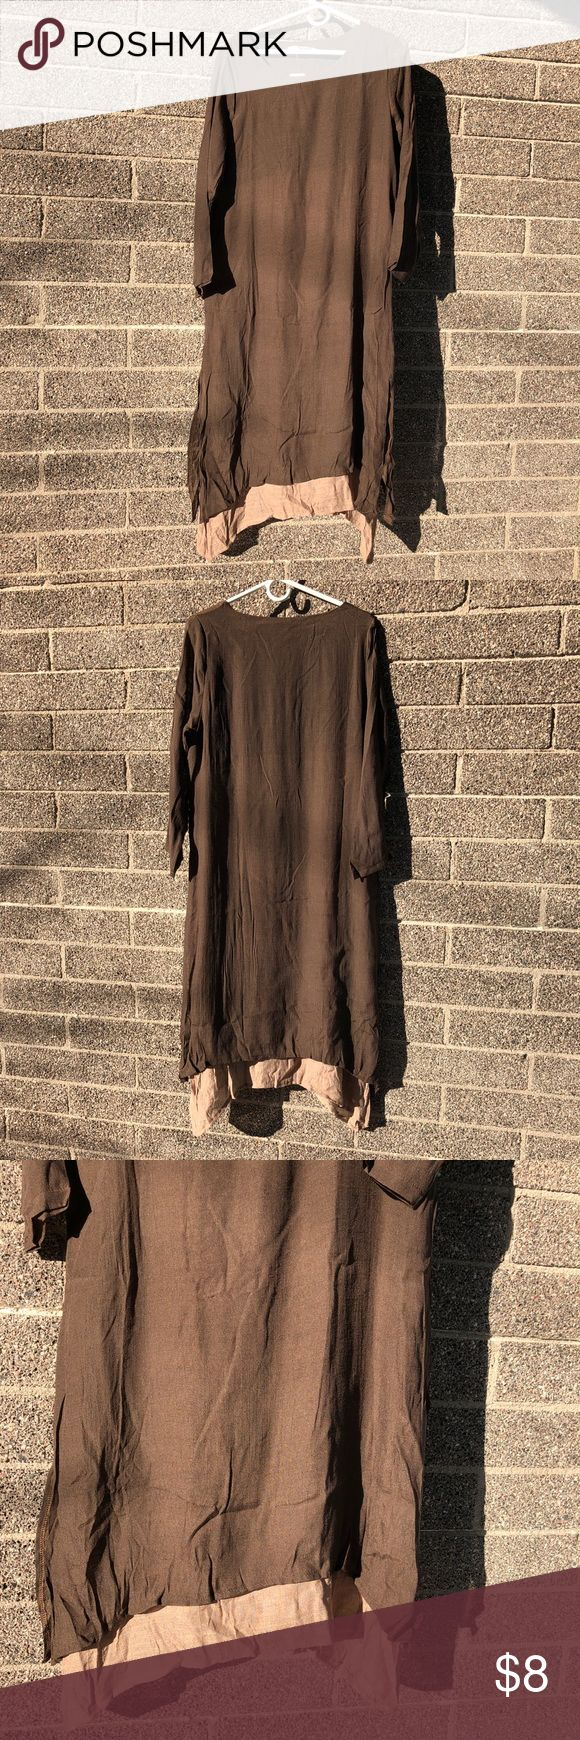 Women's brown long sleeve large dress 3 for $12 Women's brown long sleeve dress. Brand new with tags. Has a lighter brown second layer at bottom. Large size measures bust 36 inches and length 44 inches. XL size measure bust 37 inches and length 45 inches. The fabric does not have much stretch in it. 3 items for $12 just put it in a bundle and I will adjust the price ( only on select items that say this!) Dresses Long Sleeve